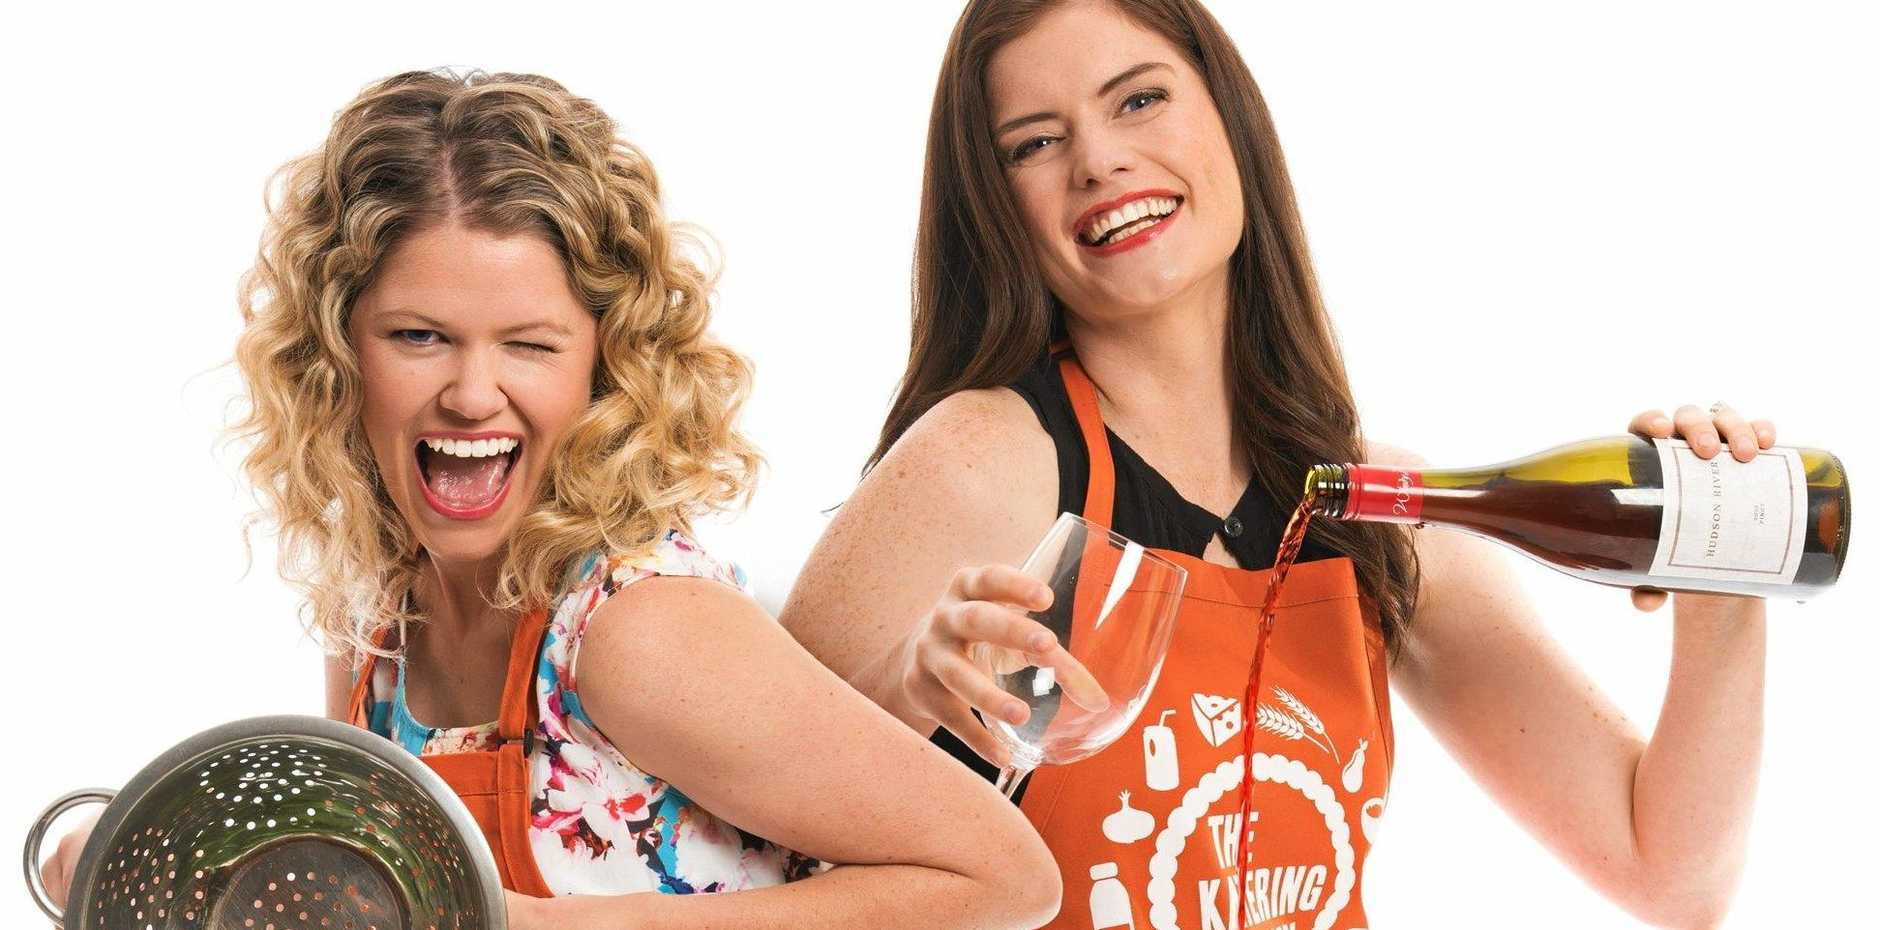 Kate McLennan and Kate McCartney star in the TV series The Katering Show.